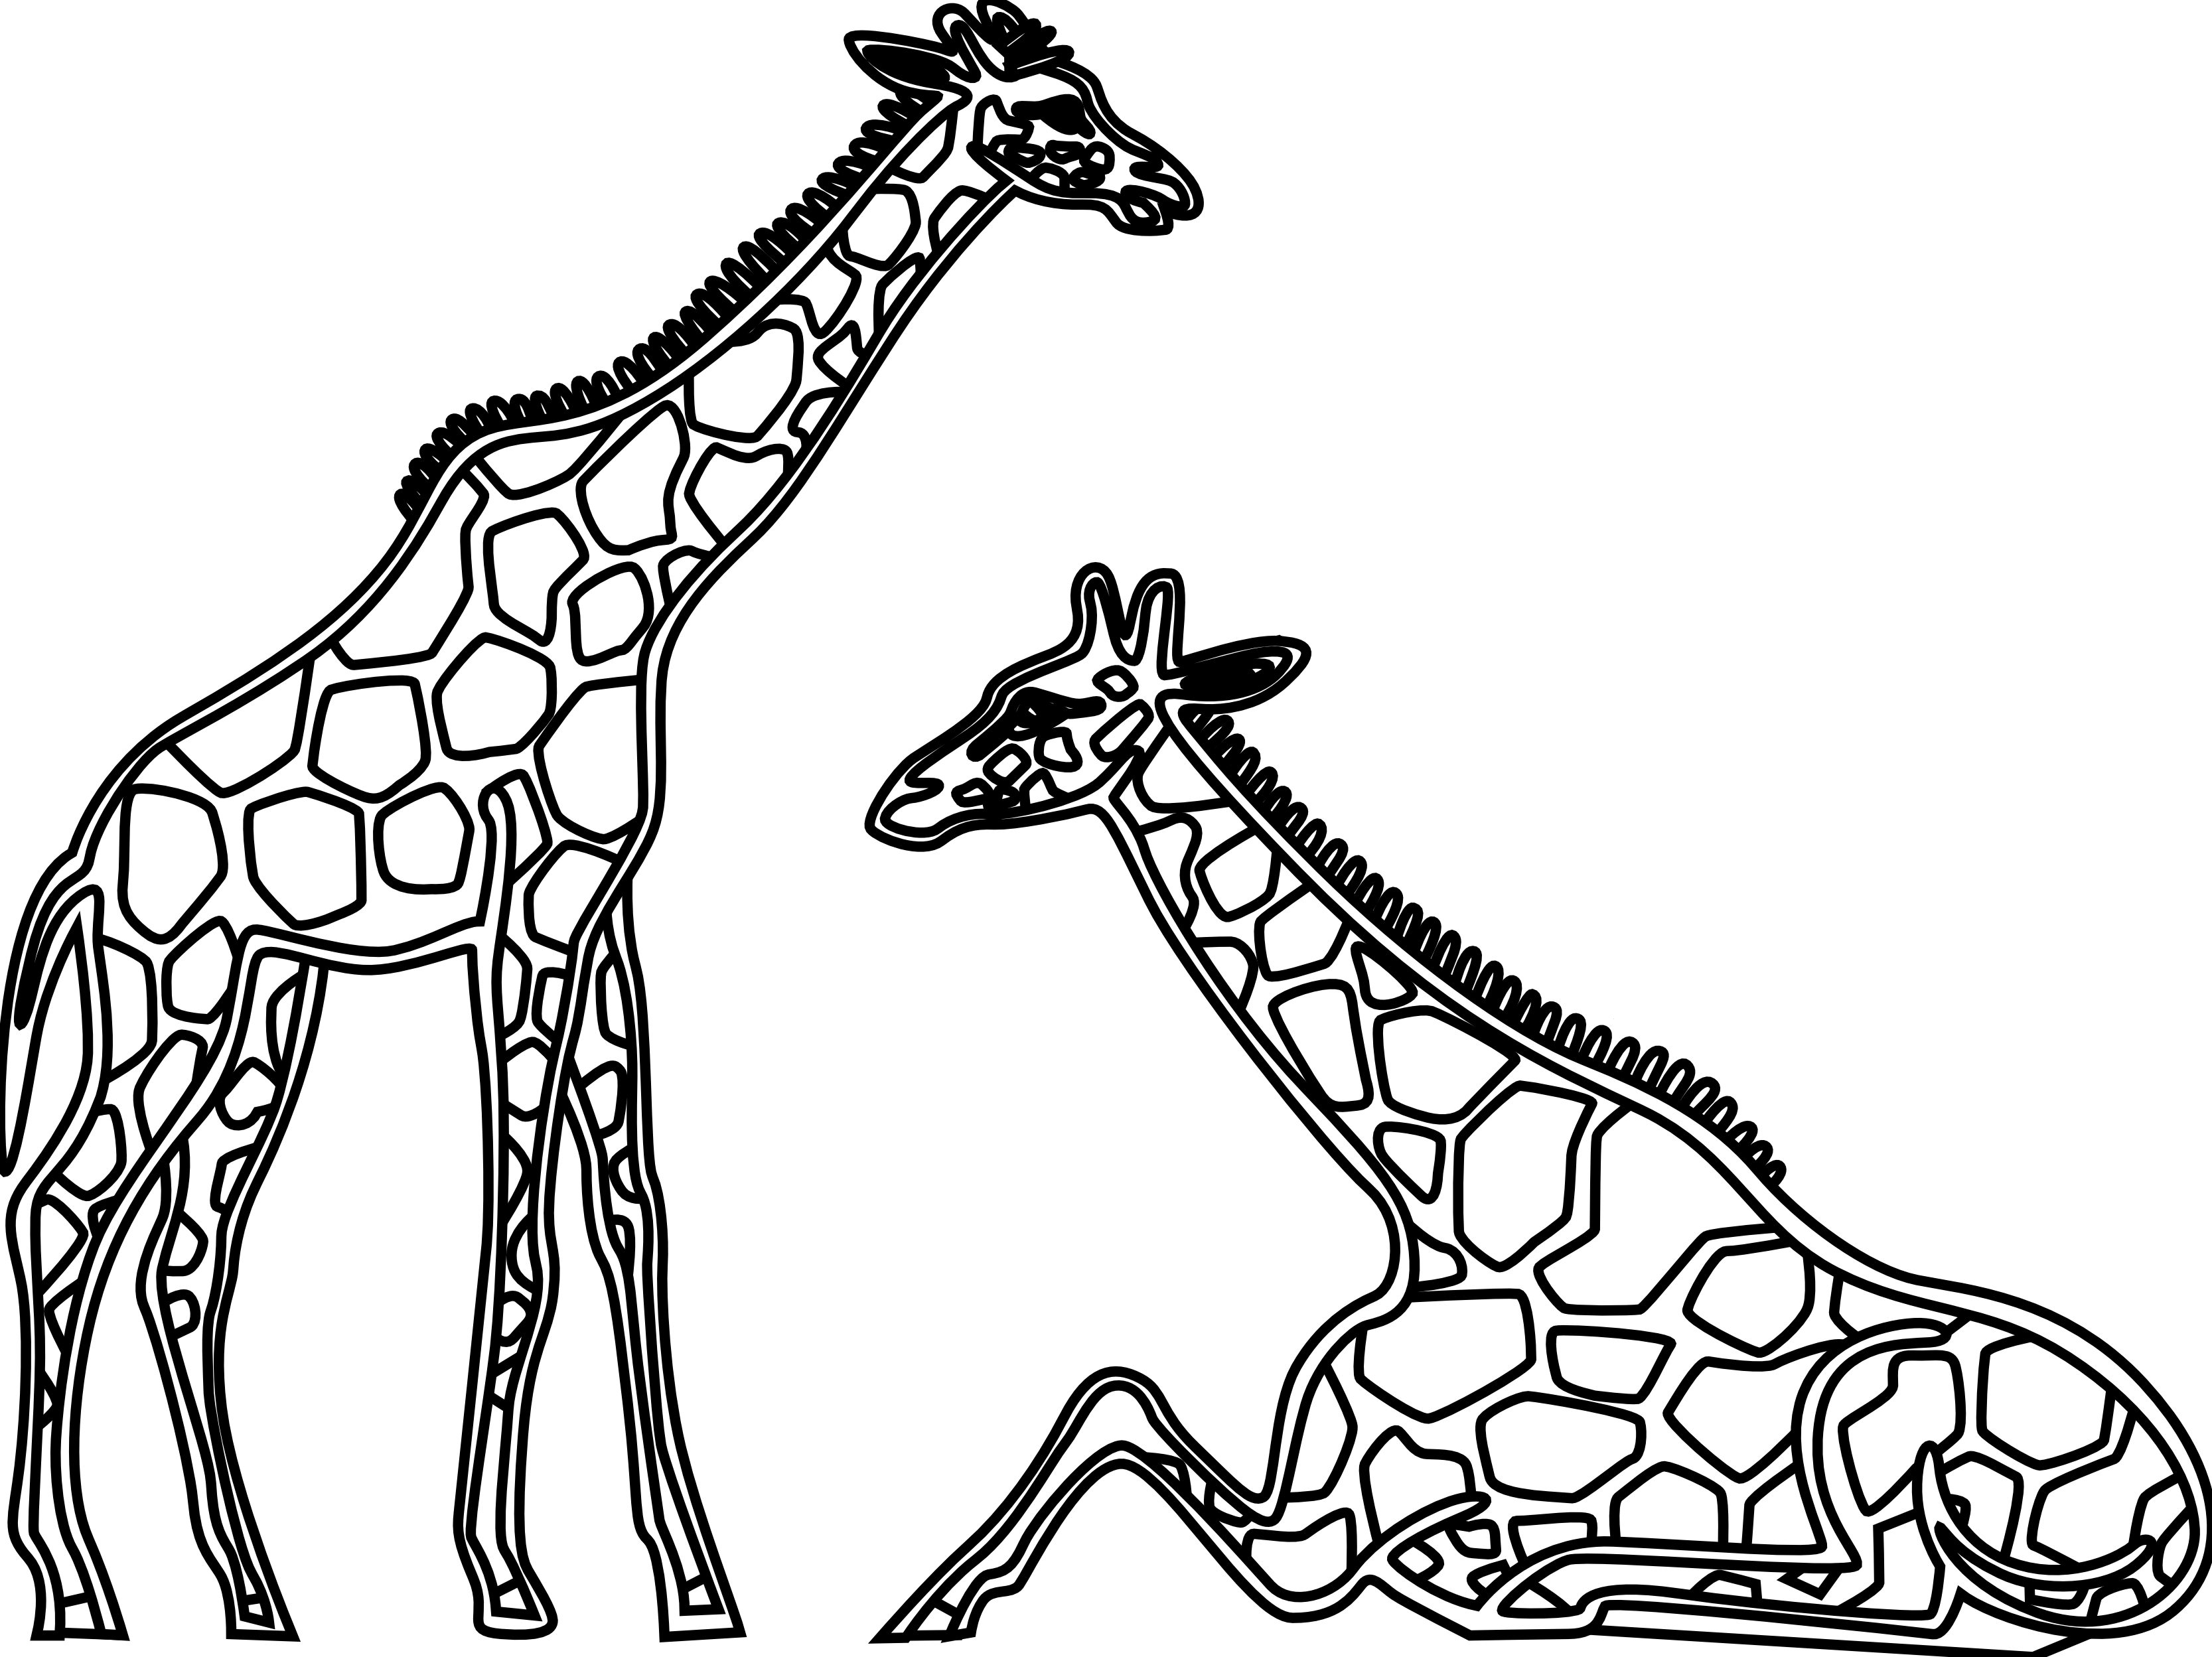 Free black and white clipart for giraffe. Panda images